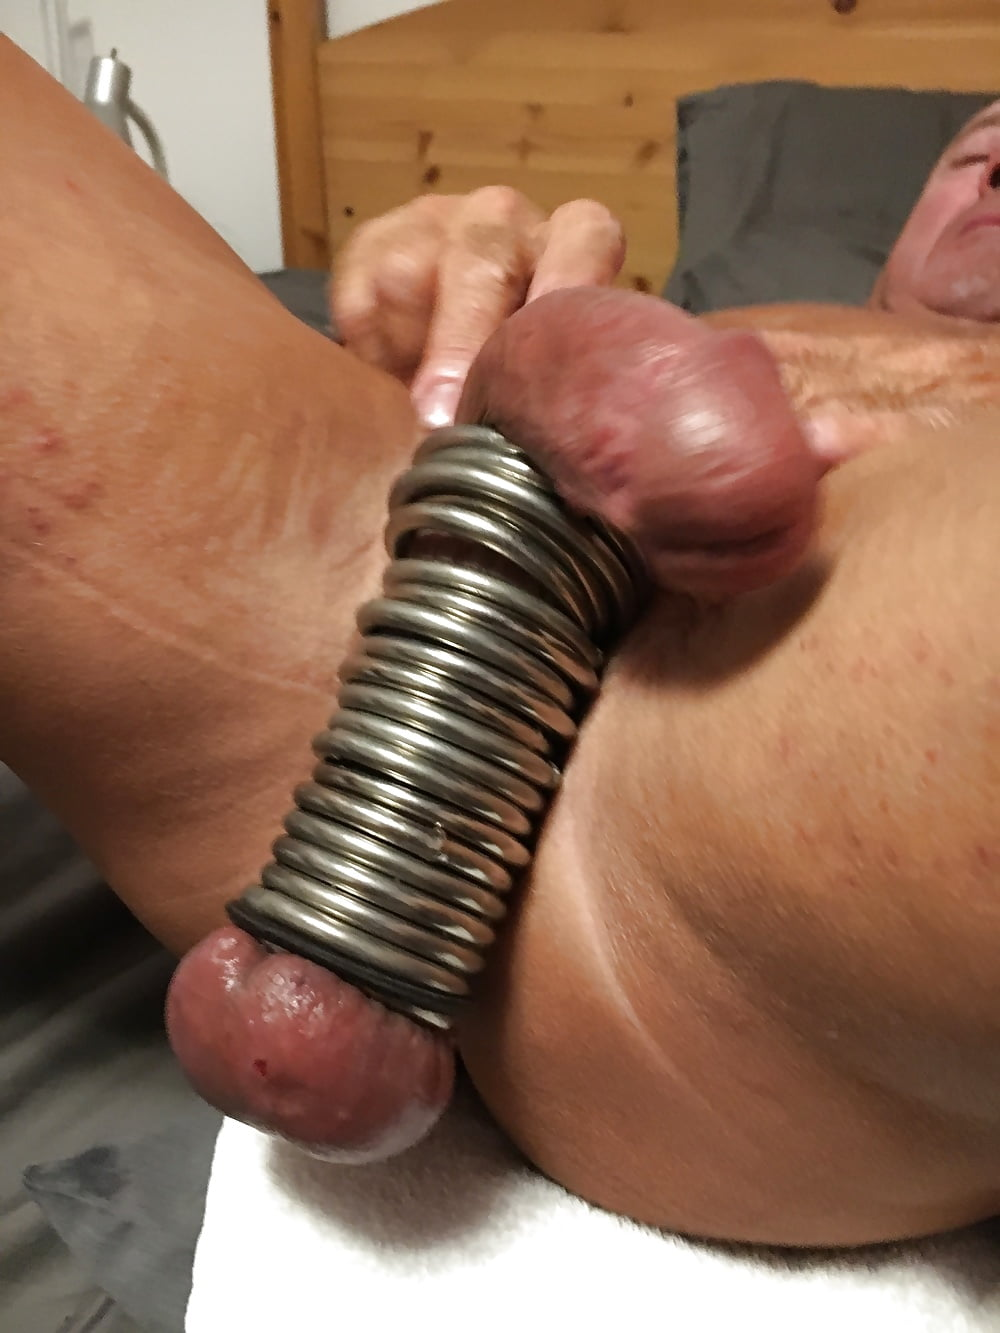 Cock and ball stretching